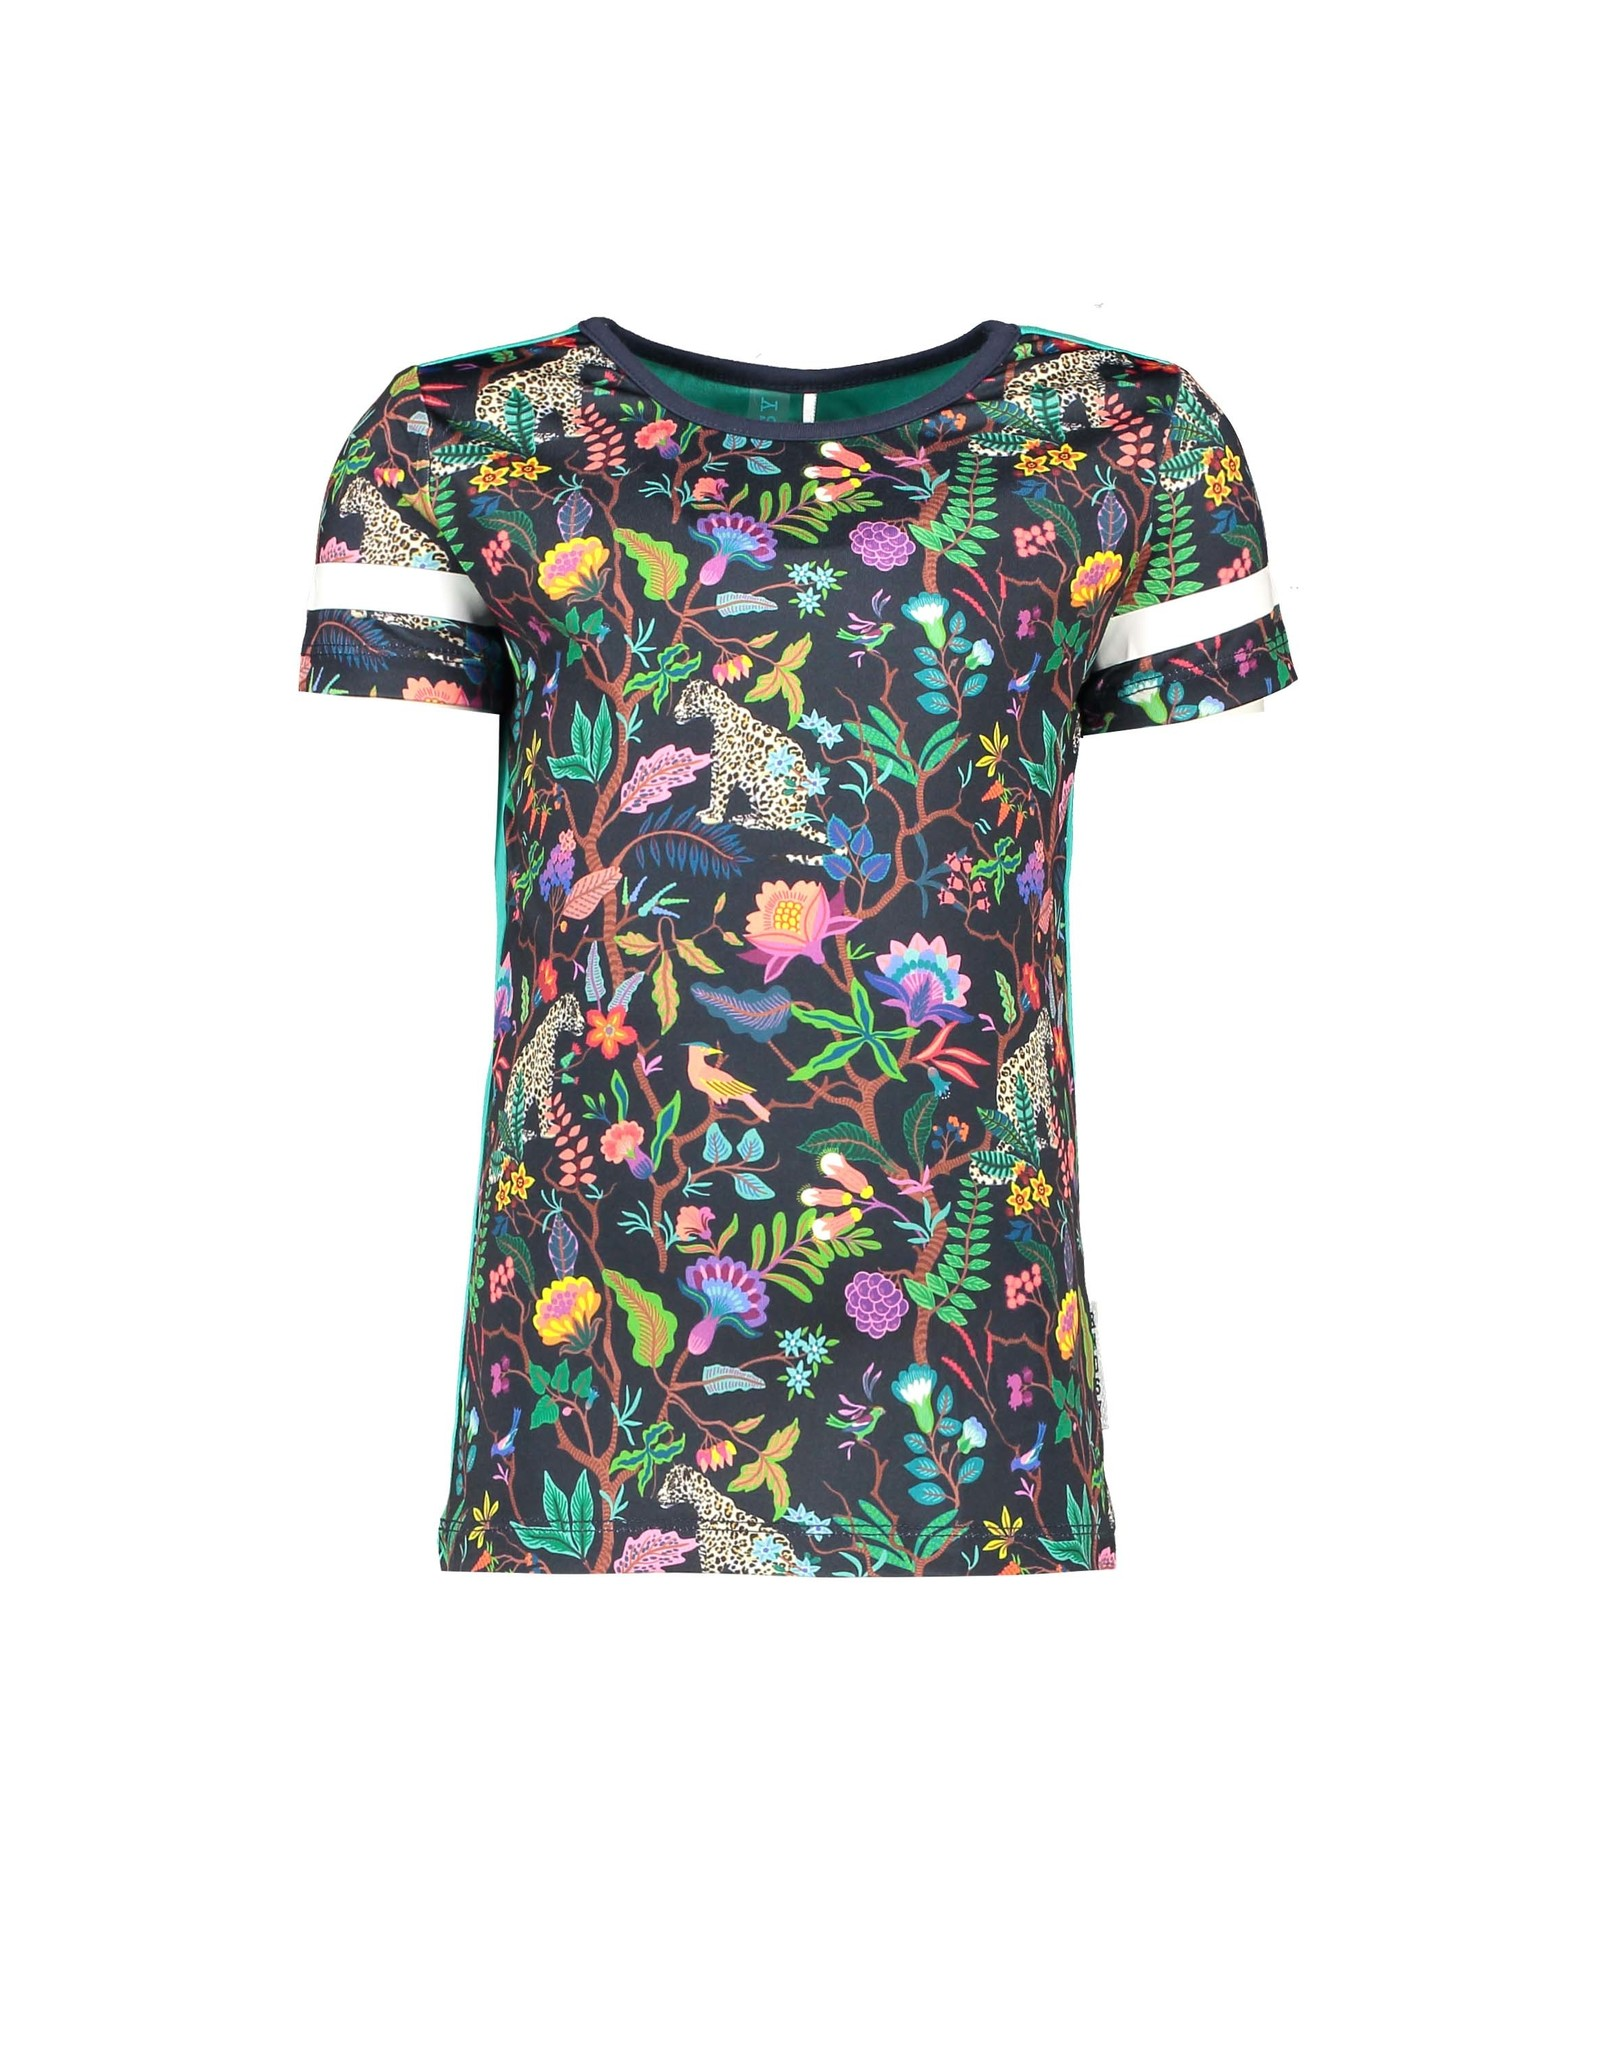 "B.Nosy B.Nosy-Girls Shirt AOP Jungle-""Jungle Girls"""